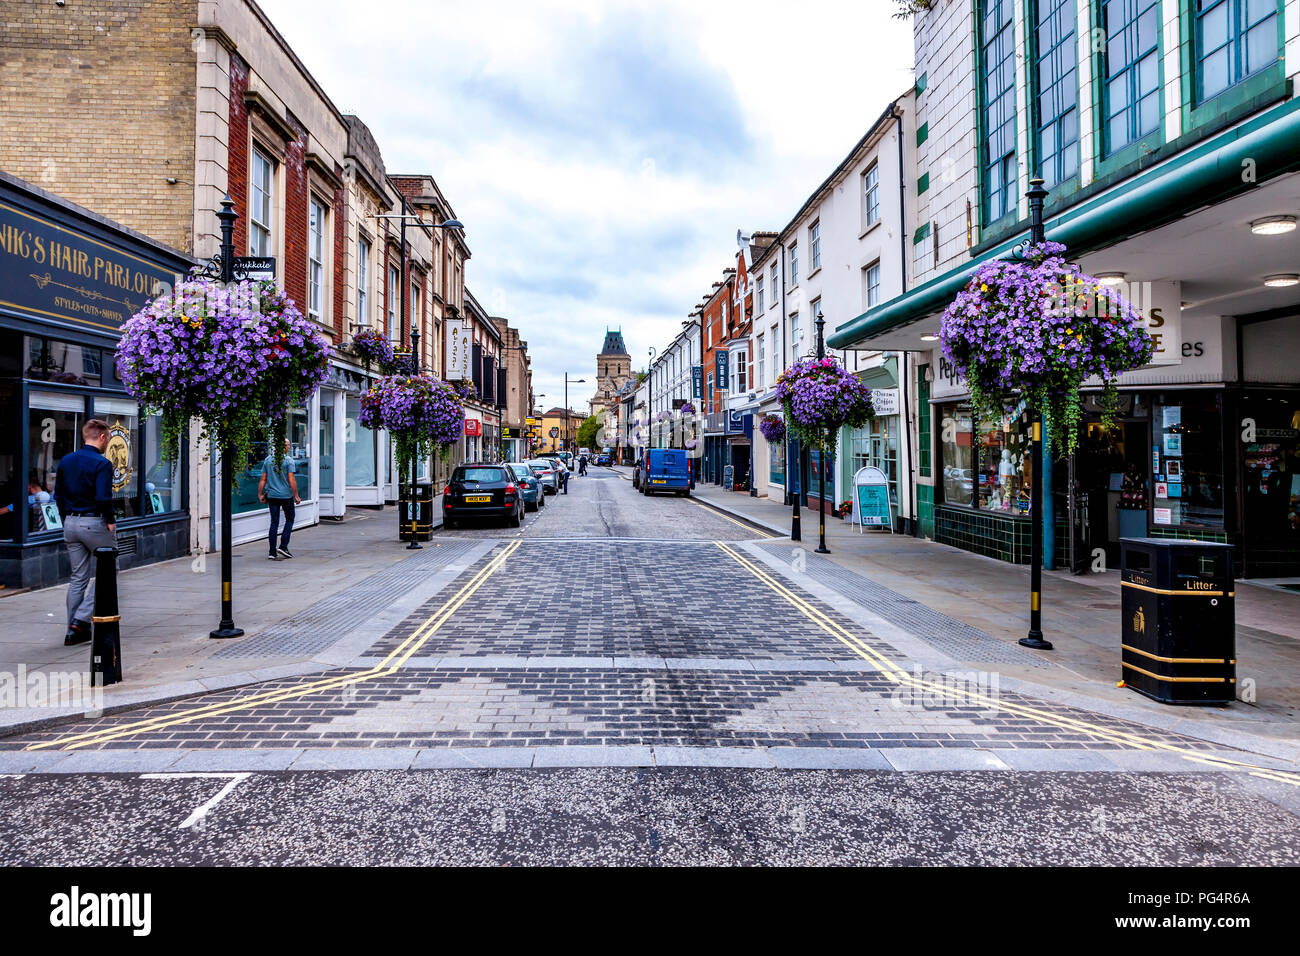 St Giles Street, Northampton, Northamptonshire, UK on a quite dull morning looking towards the town centre. - Stock Image